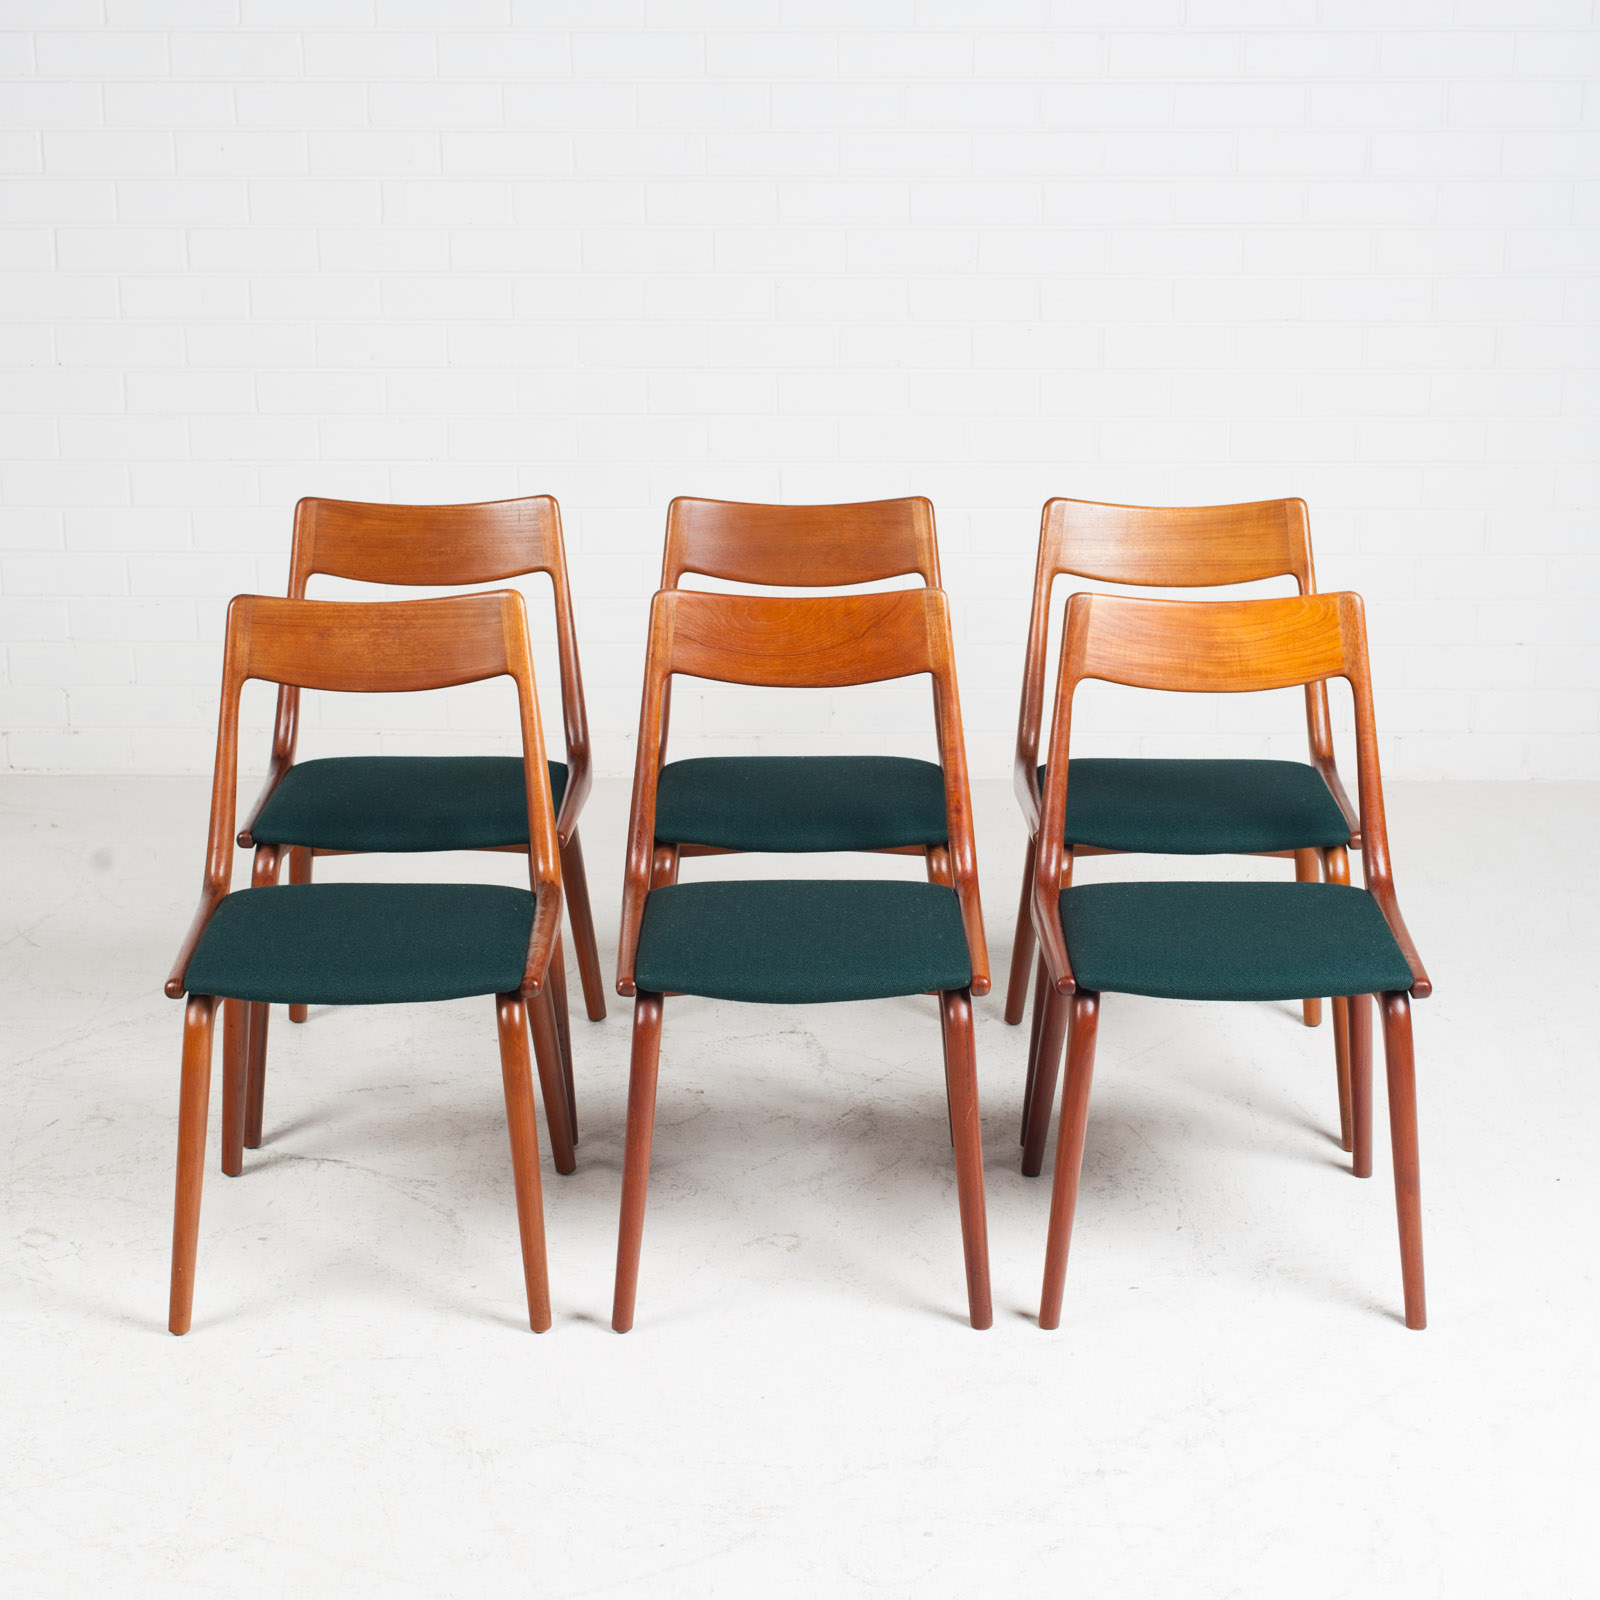 Set Of 6 Model 370 'boomerang' Dining Chair By Alfred Christensen In Teak For Slagelse Mobelfabrik 1950s Denmark 10